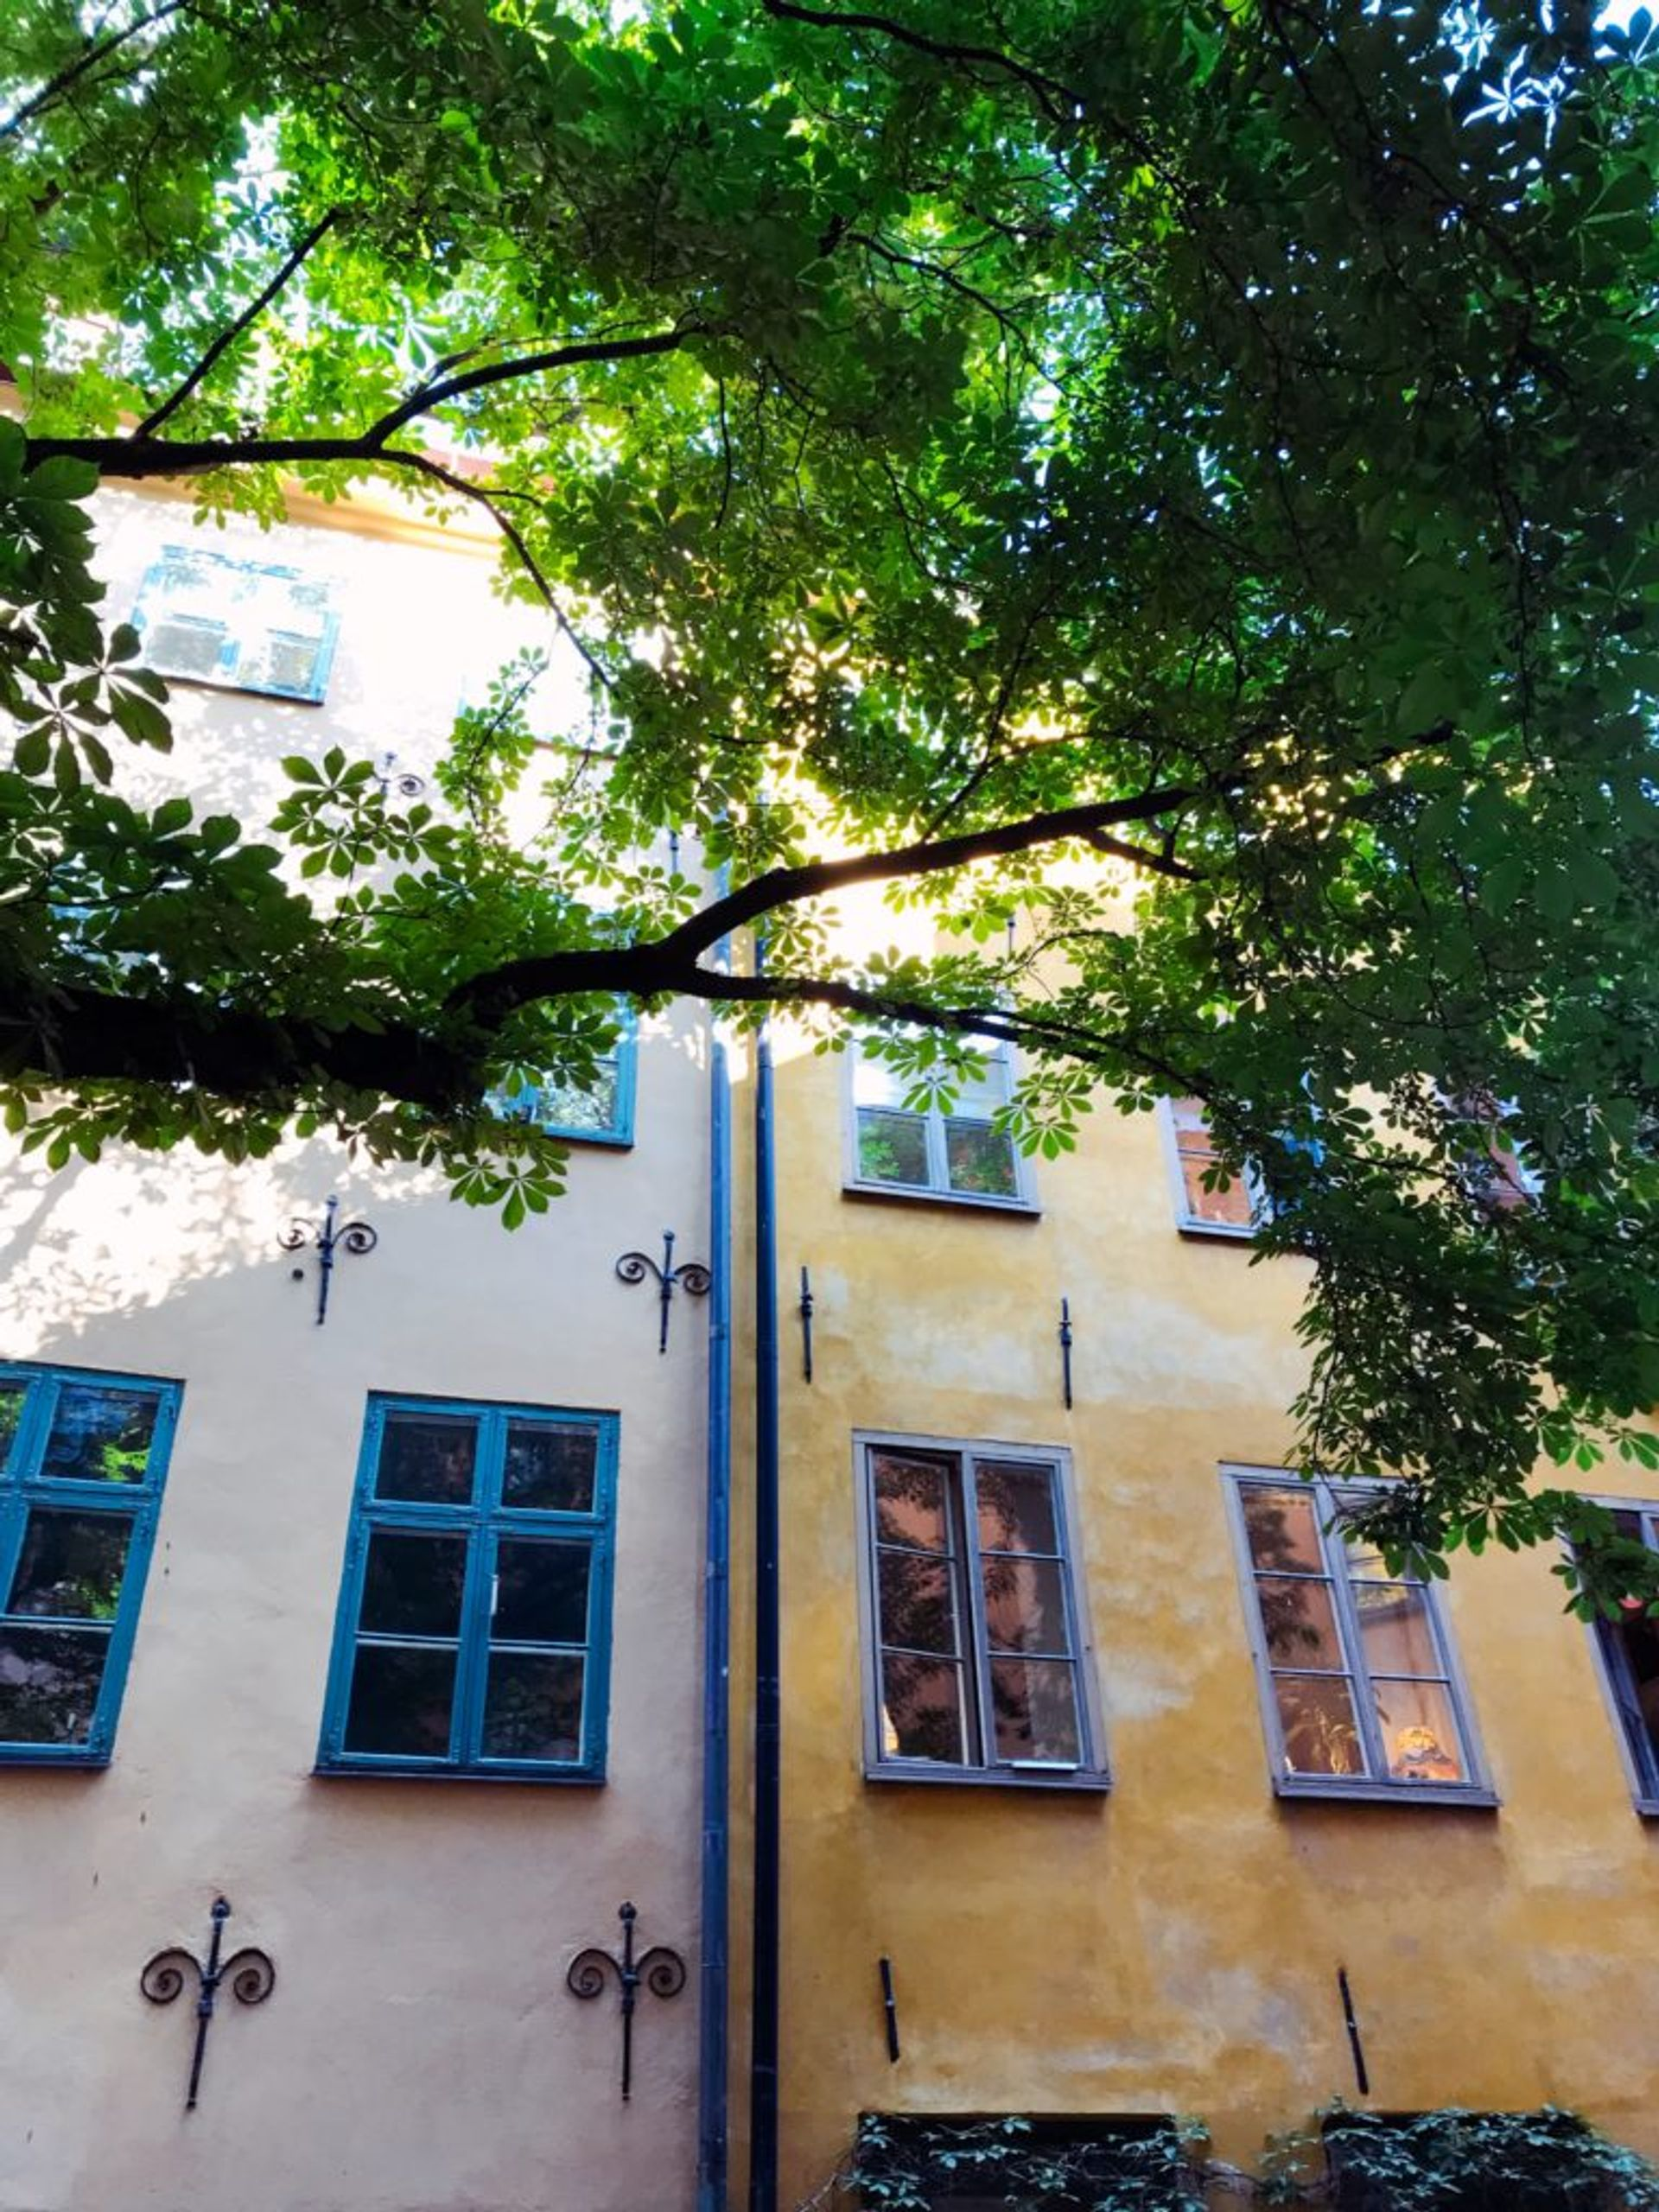 A sycamore tree in Stockholm's Old Town.